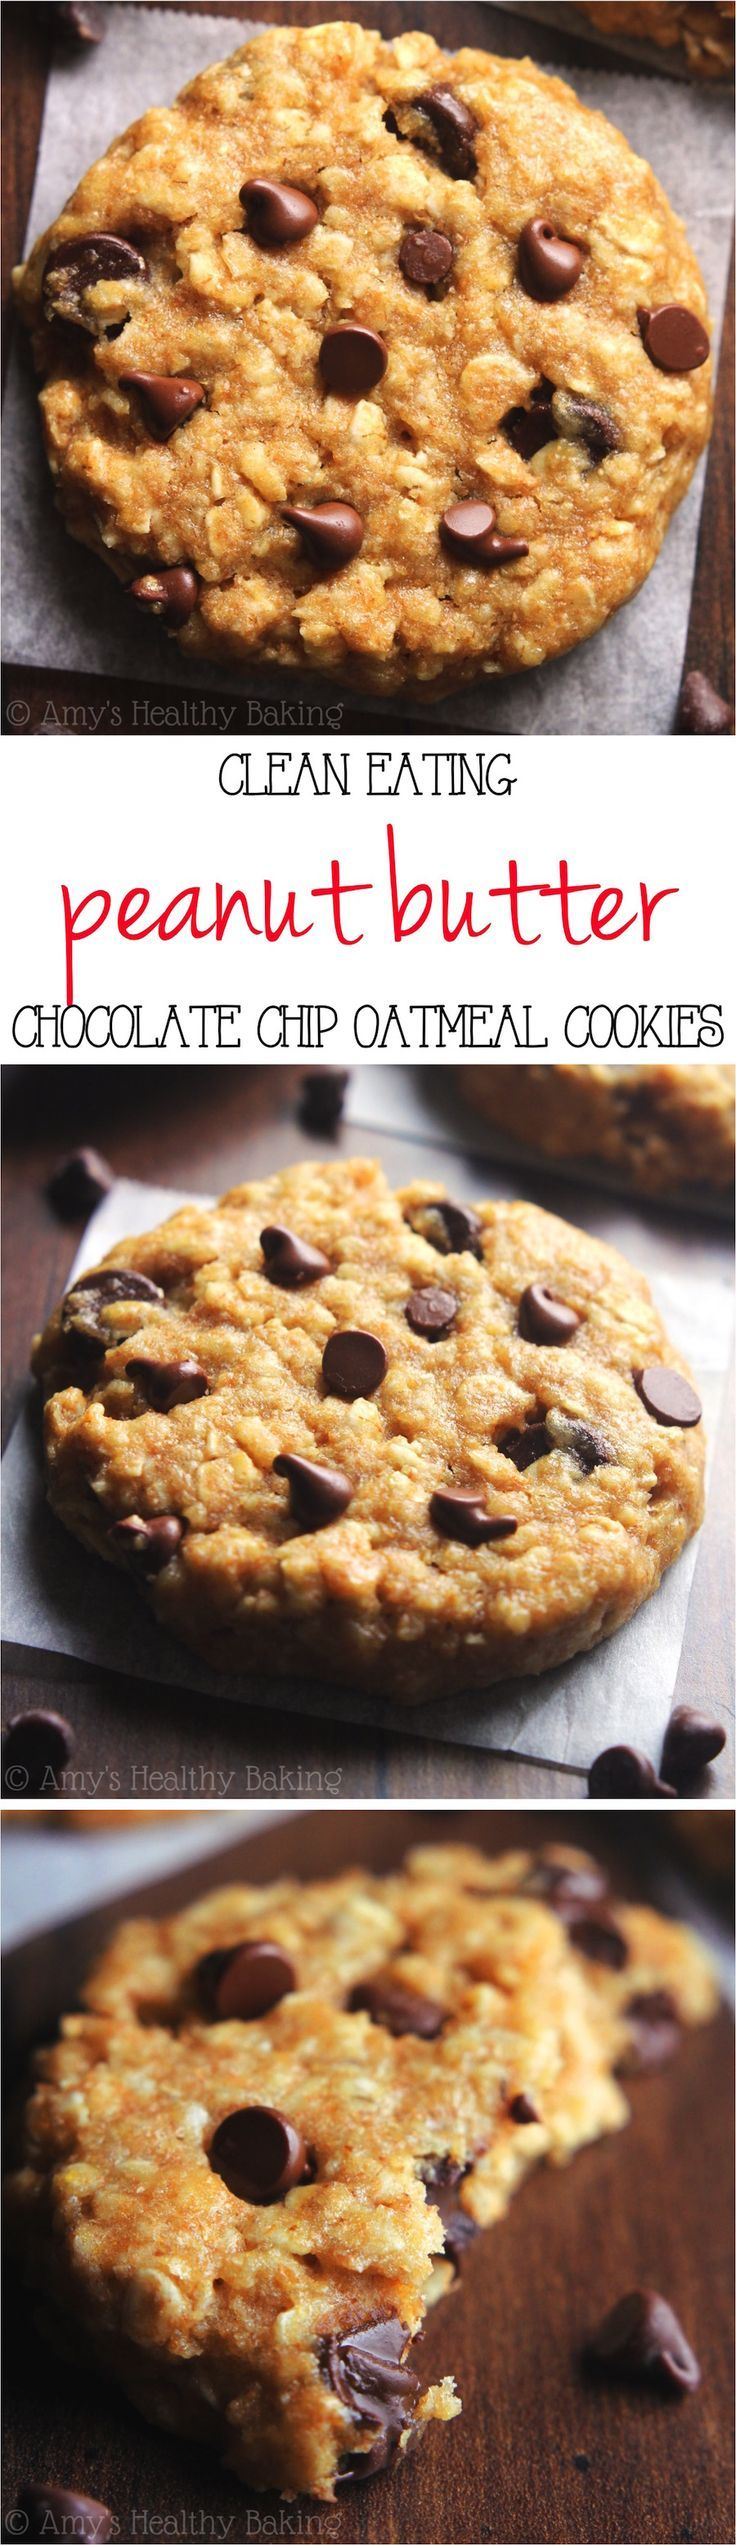 Clean-Eating Chocolate Chip Peanut Butter Oatmeal Cookies -- You'll never need another oatmeal cookie recipe again!